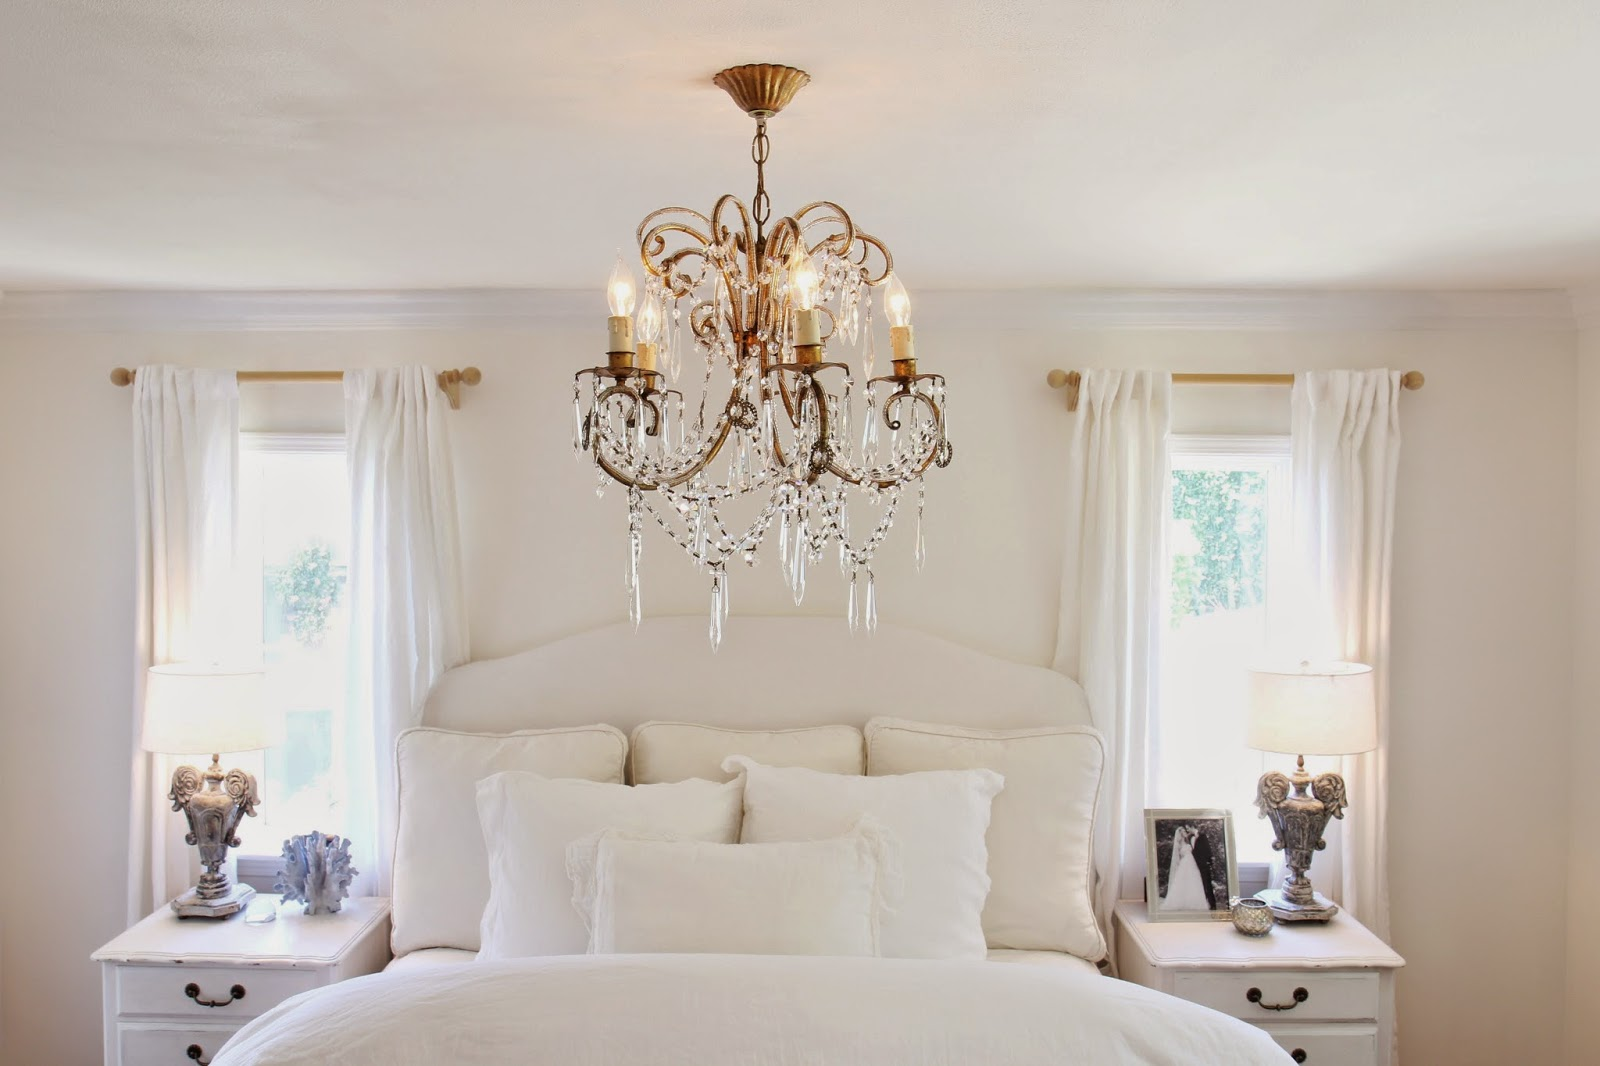 A Chandelier for the Master Bedroom; White Palette in Home Decor; Nora's Nest